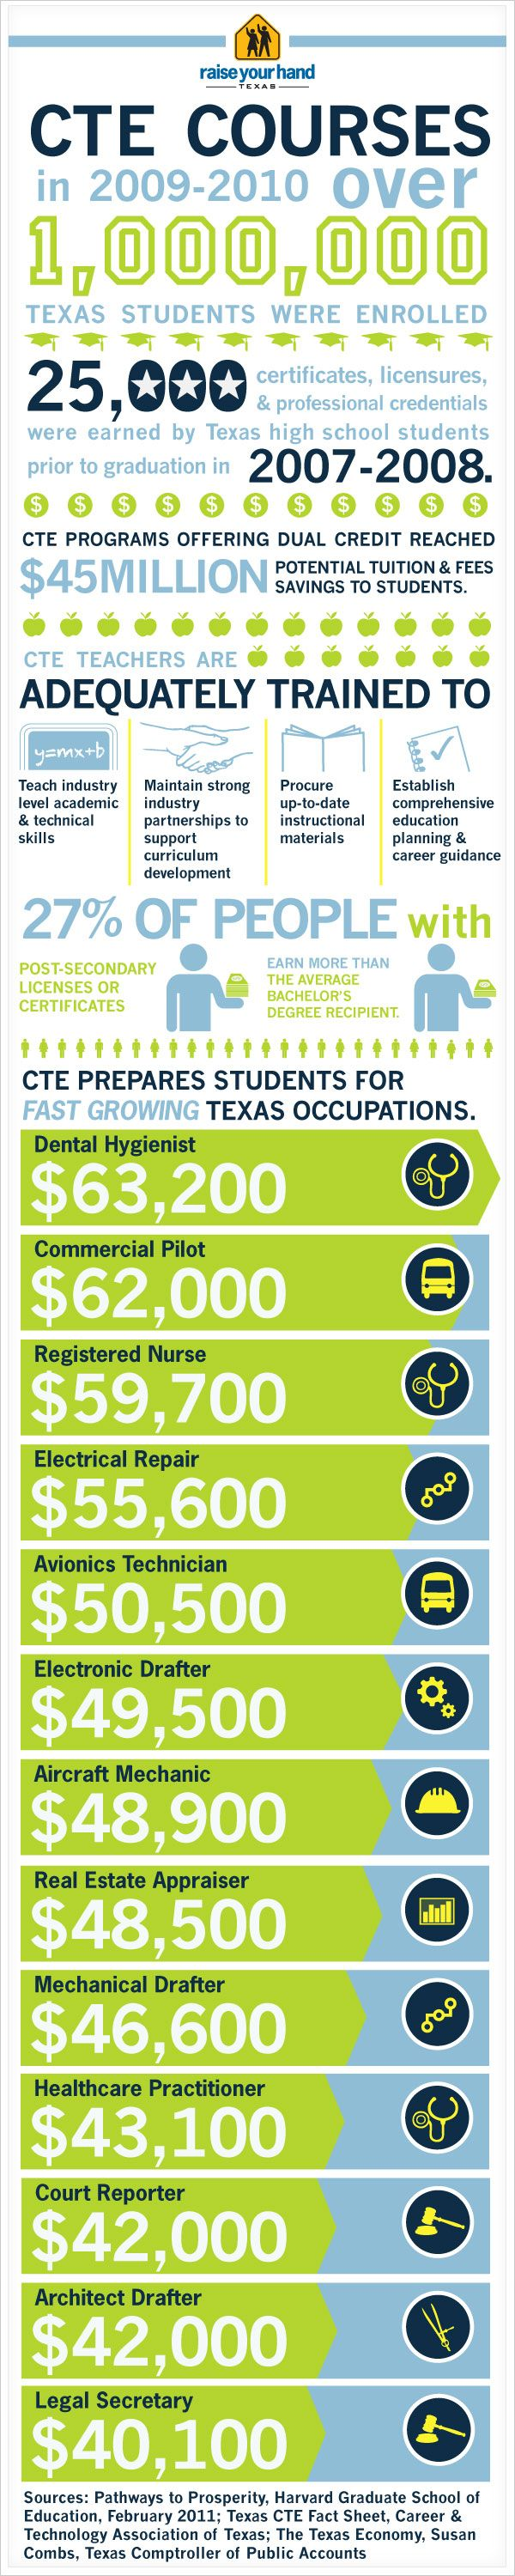 career and technology education cte represents a fundamental career and technology education cte represents a fundamental shift in philosophy away from high school vocational courses to highly technical